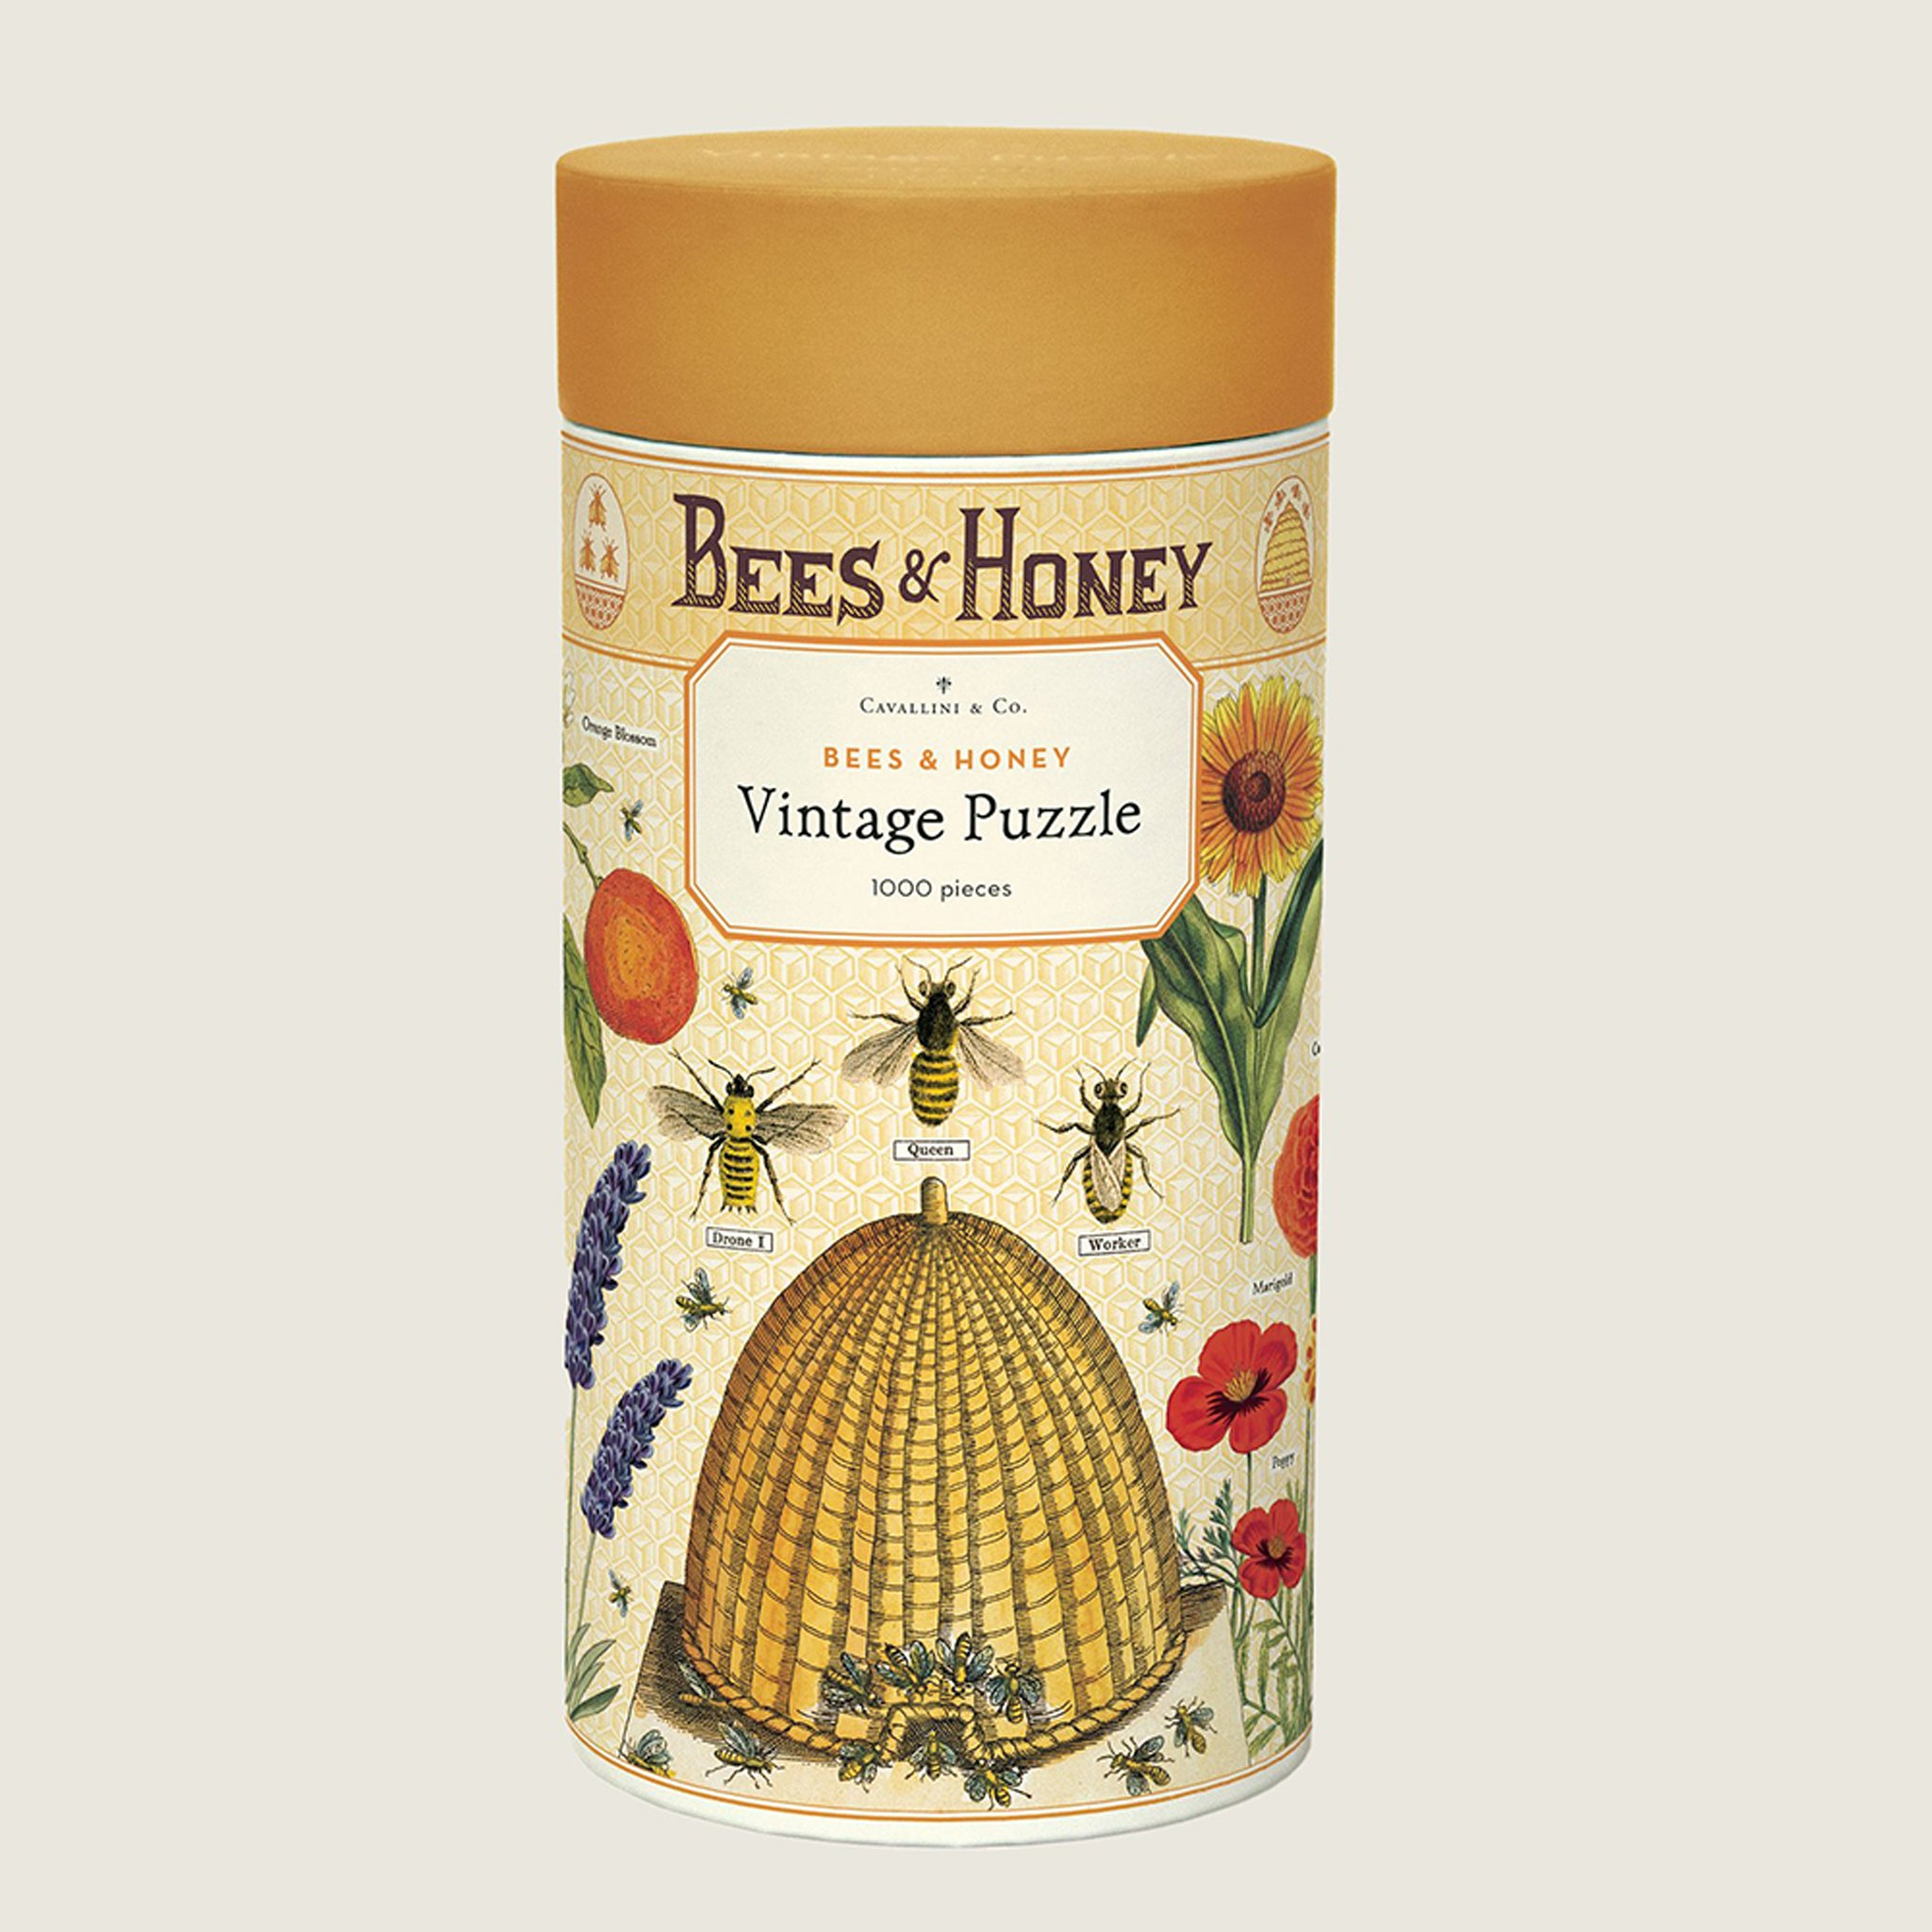 Bees & Honey Vintage Puzzle - Blackbird General Store